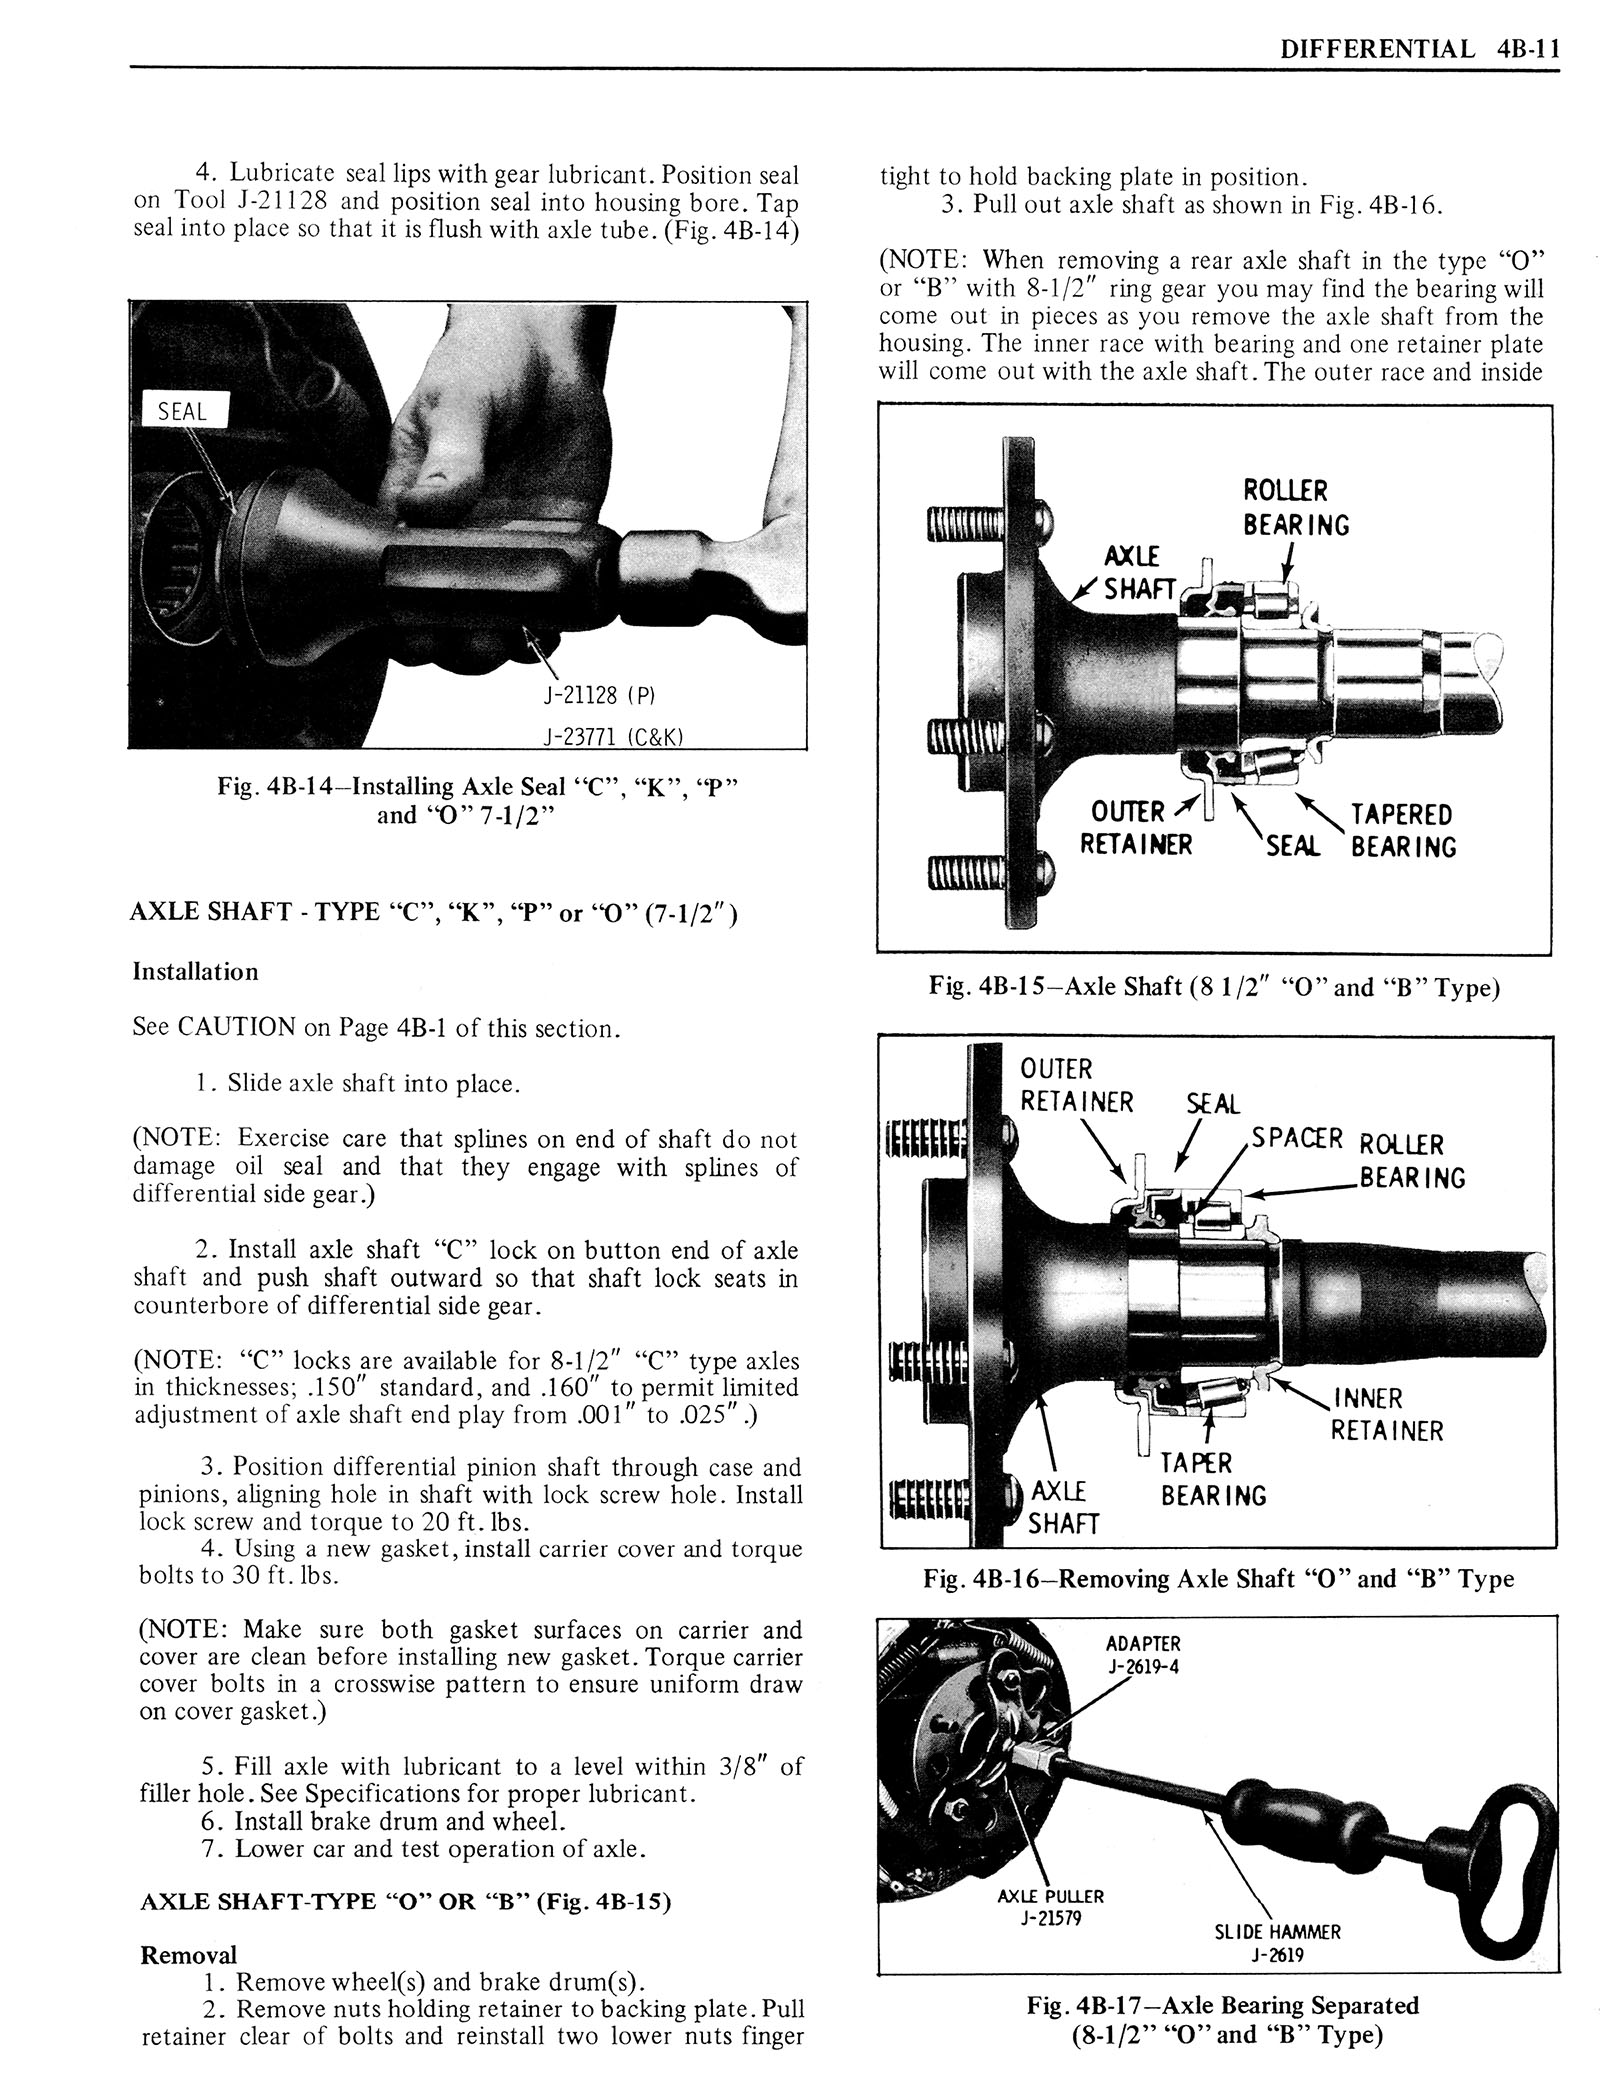 1976 Oldsmobile Service Manual page 297 of 1390